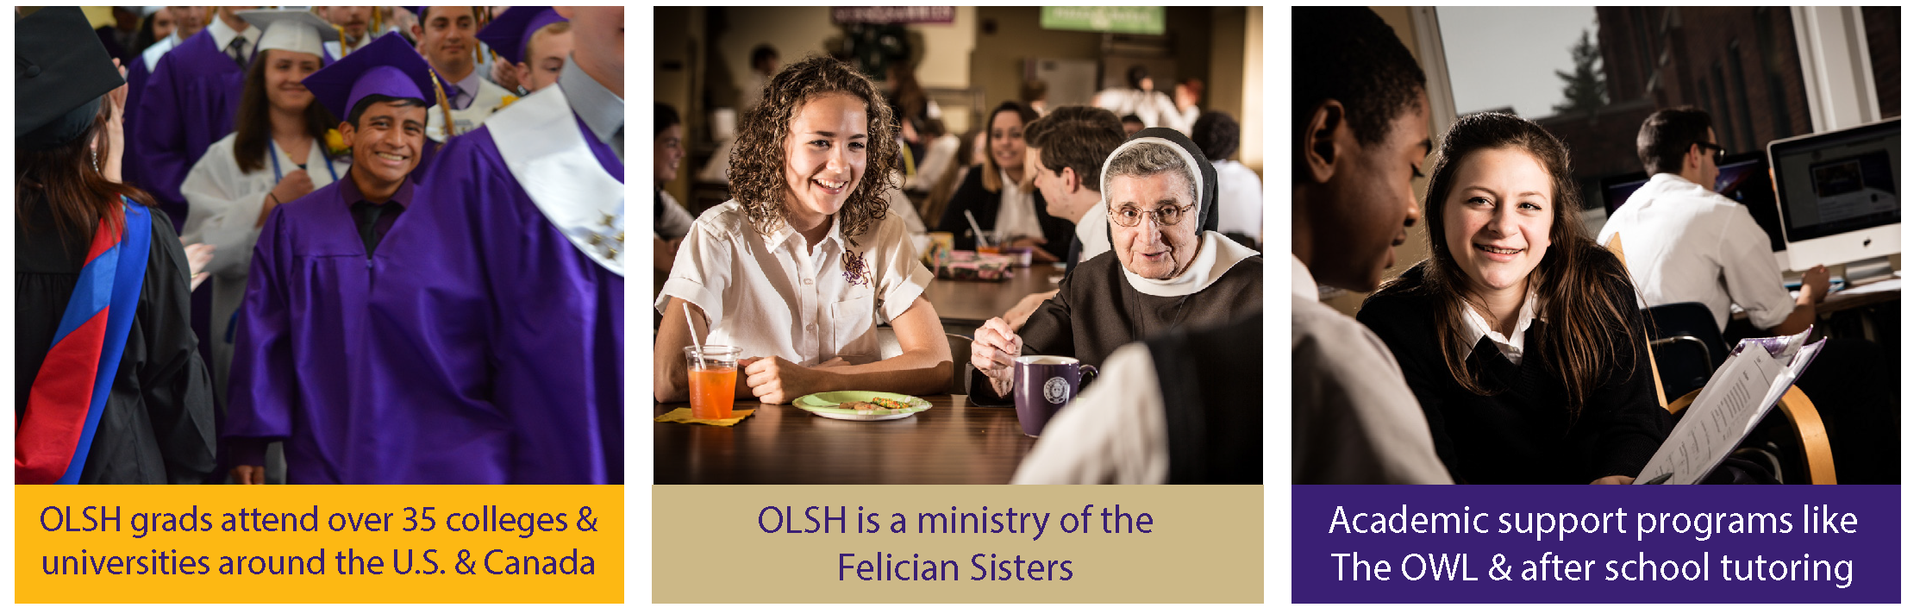 Did you know? OLSH is a ministry of the Felician Sisters